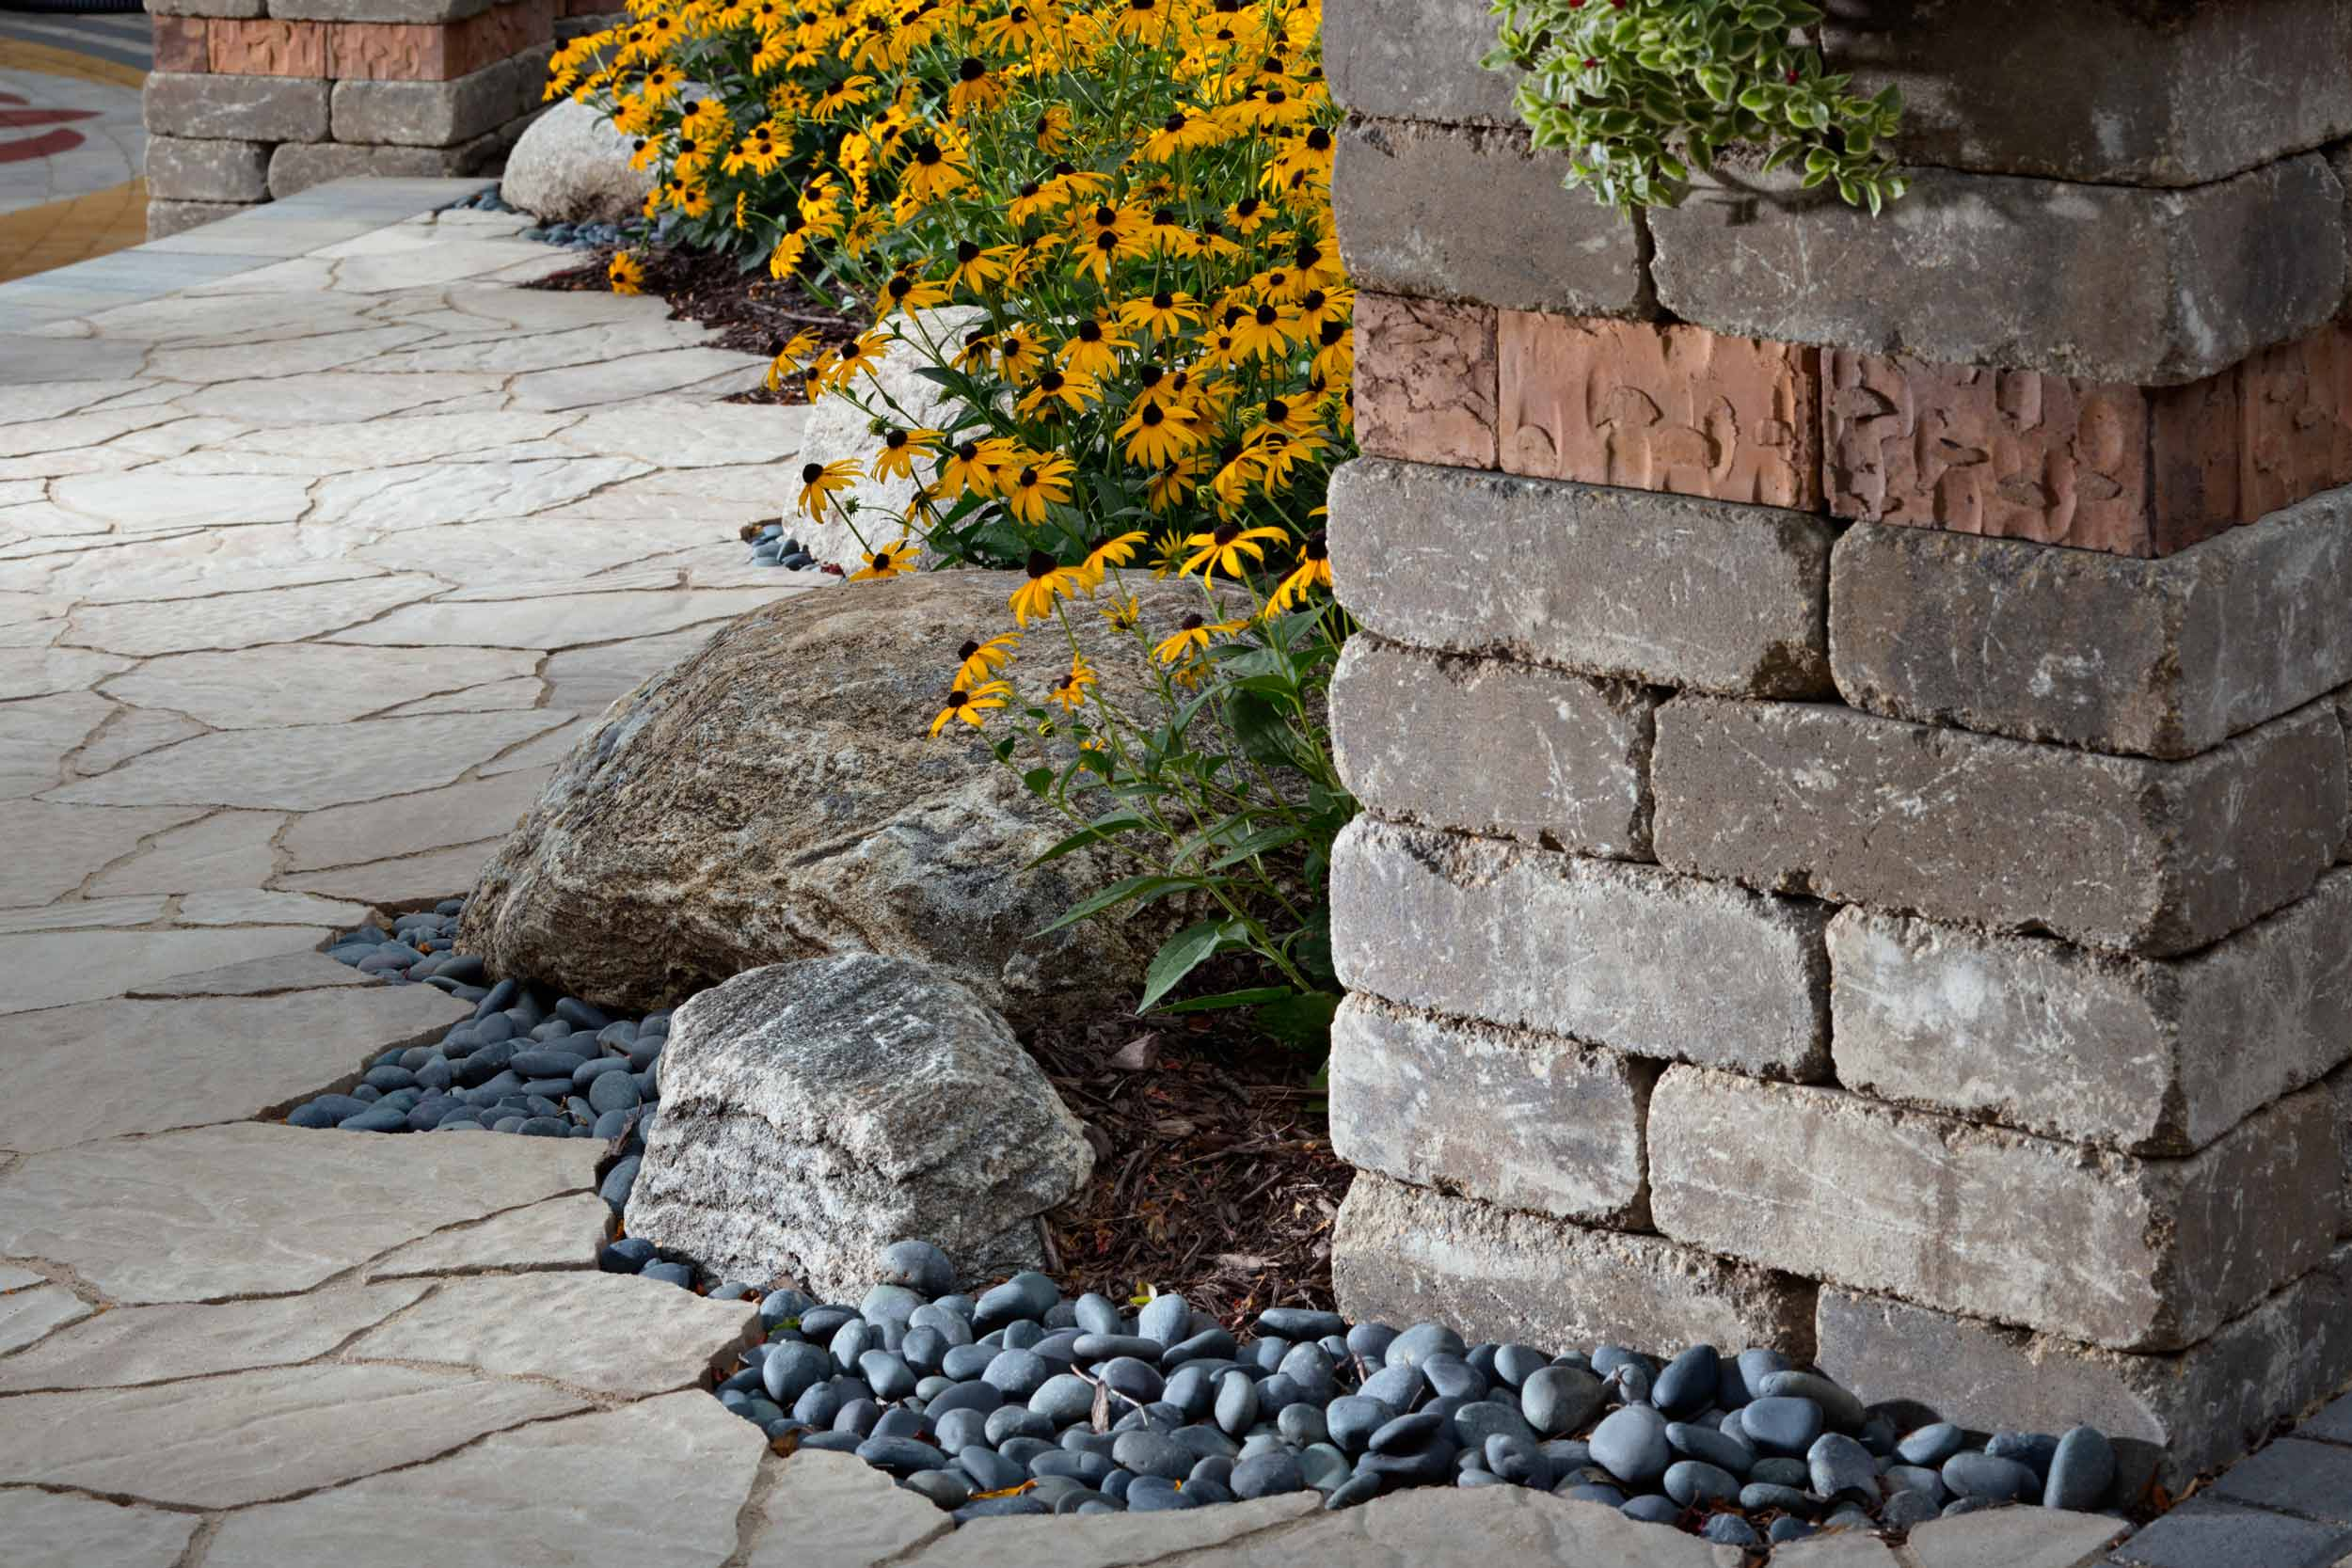 Using Concrete Pavers with pea stone for a walkway.